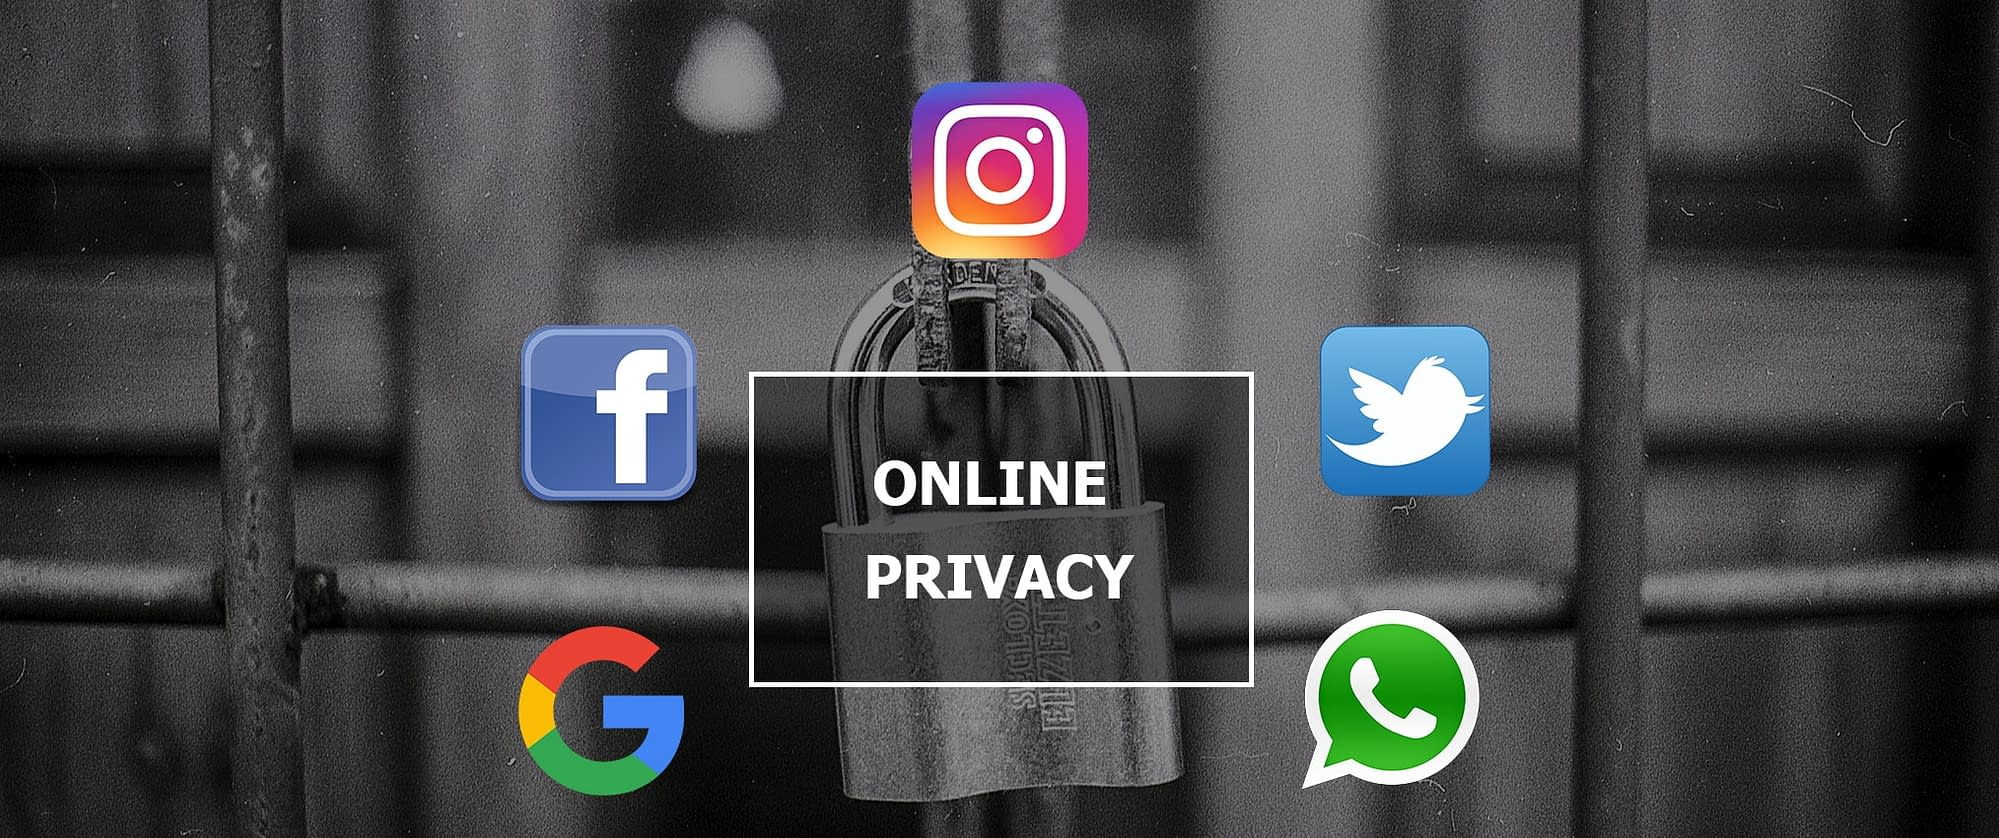 How to Keep Your Online Privacy Confidential?